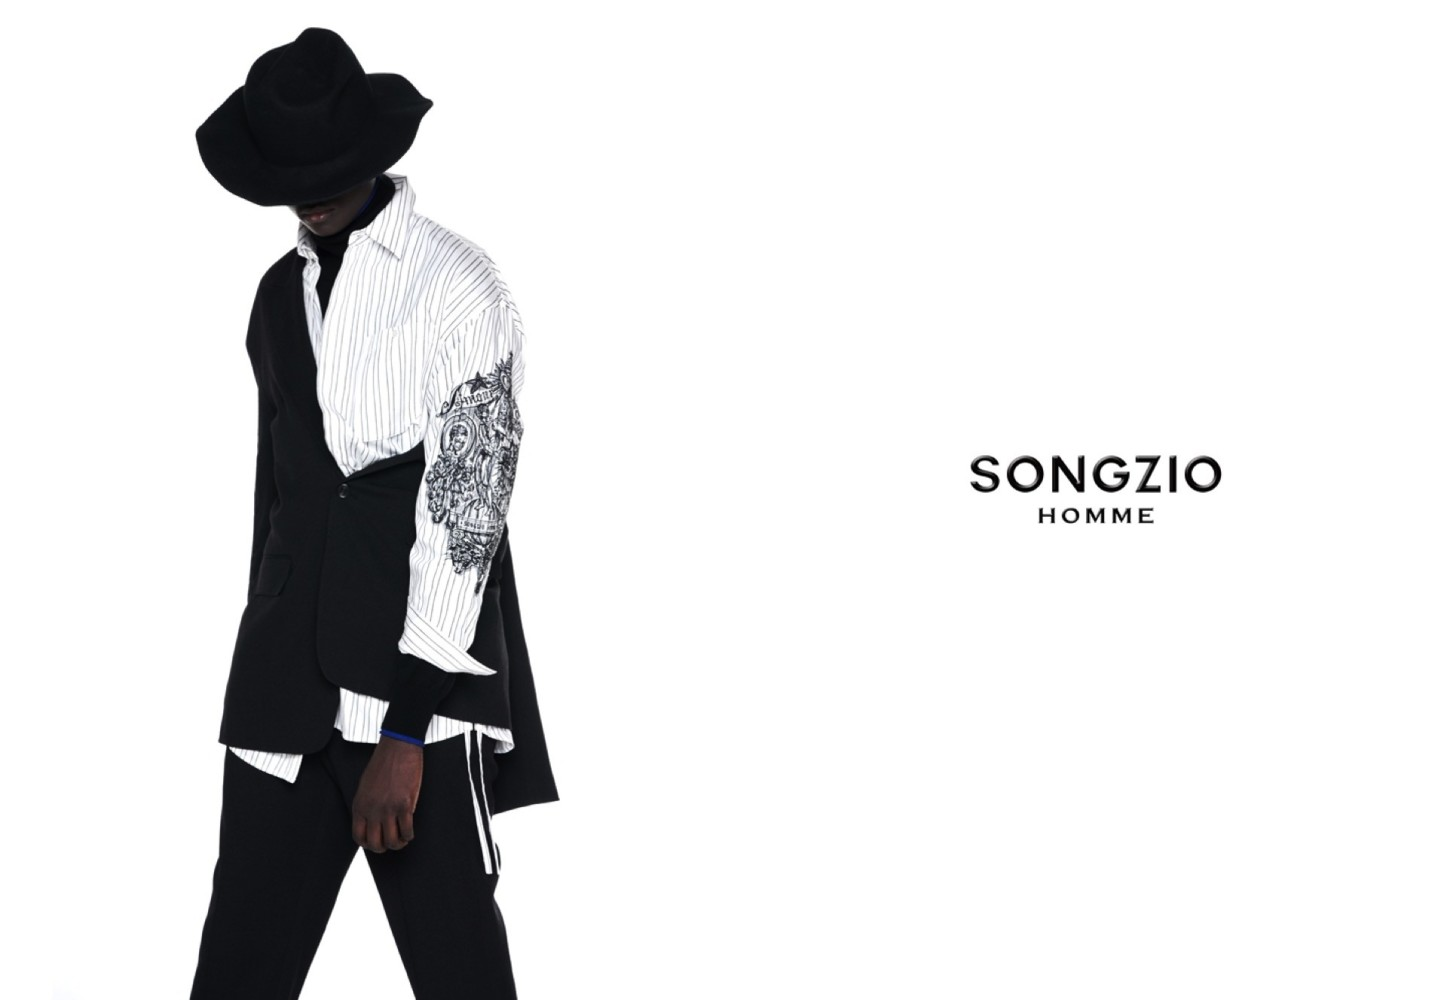 Djily for Songzio Homme campaign